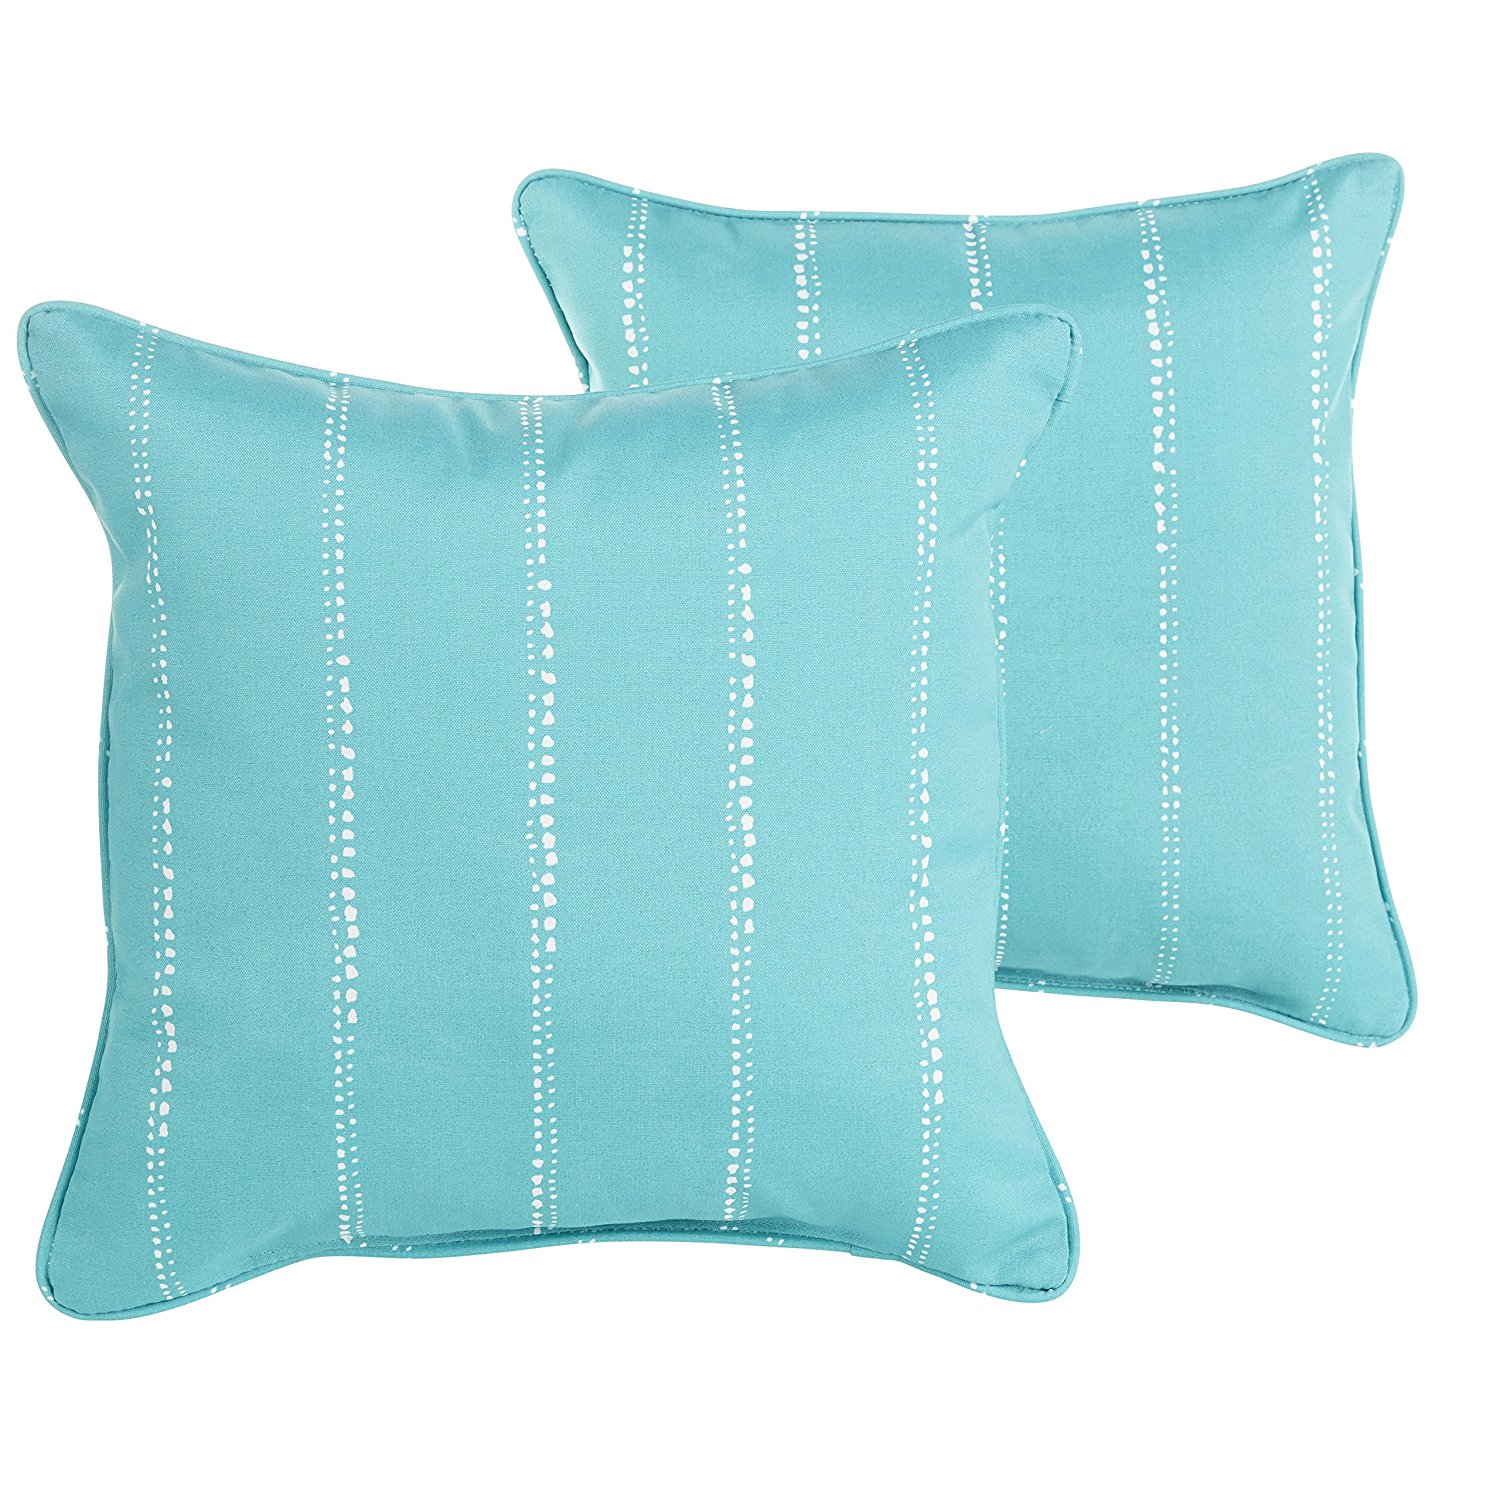 Mozaic Company Indoor/ Outdoor 20-inch Corded Pillow, Aqua Dotted Stripes, Set of 2